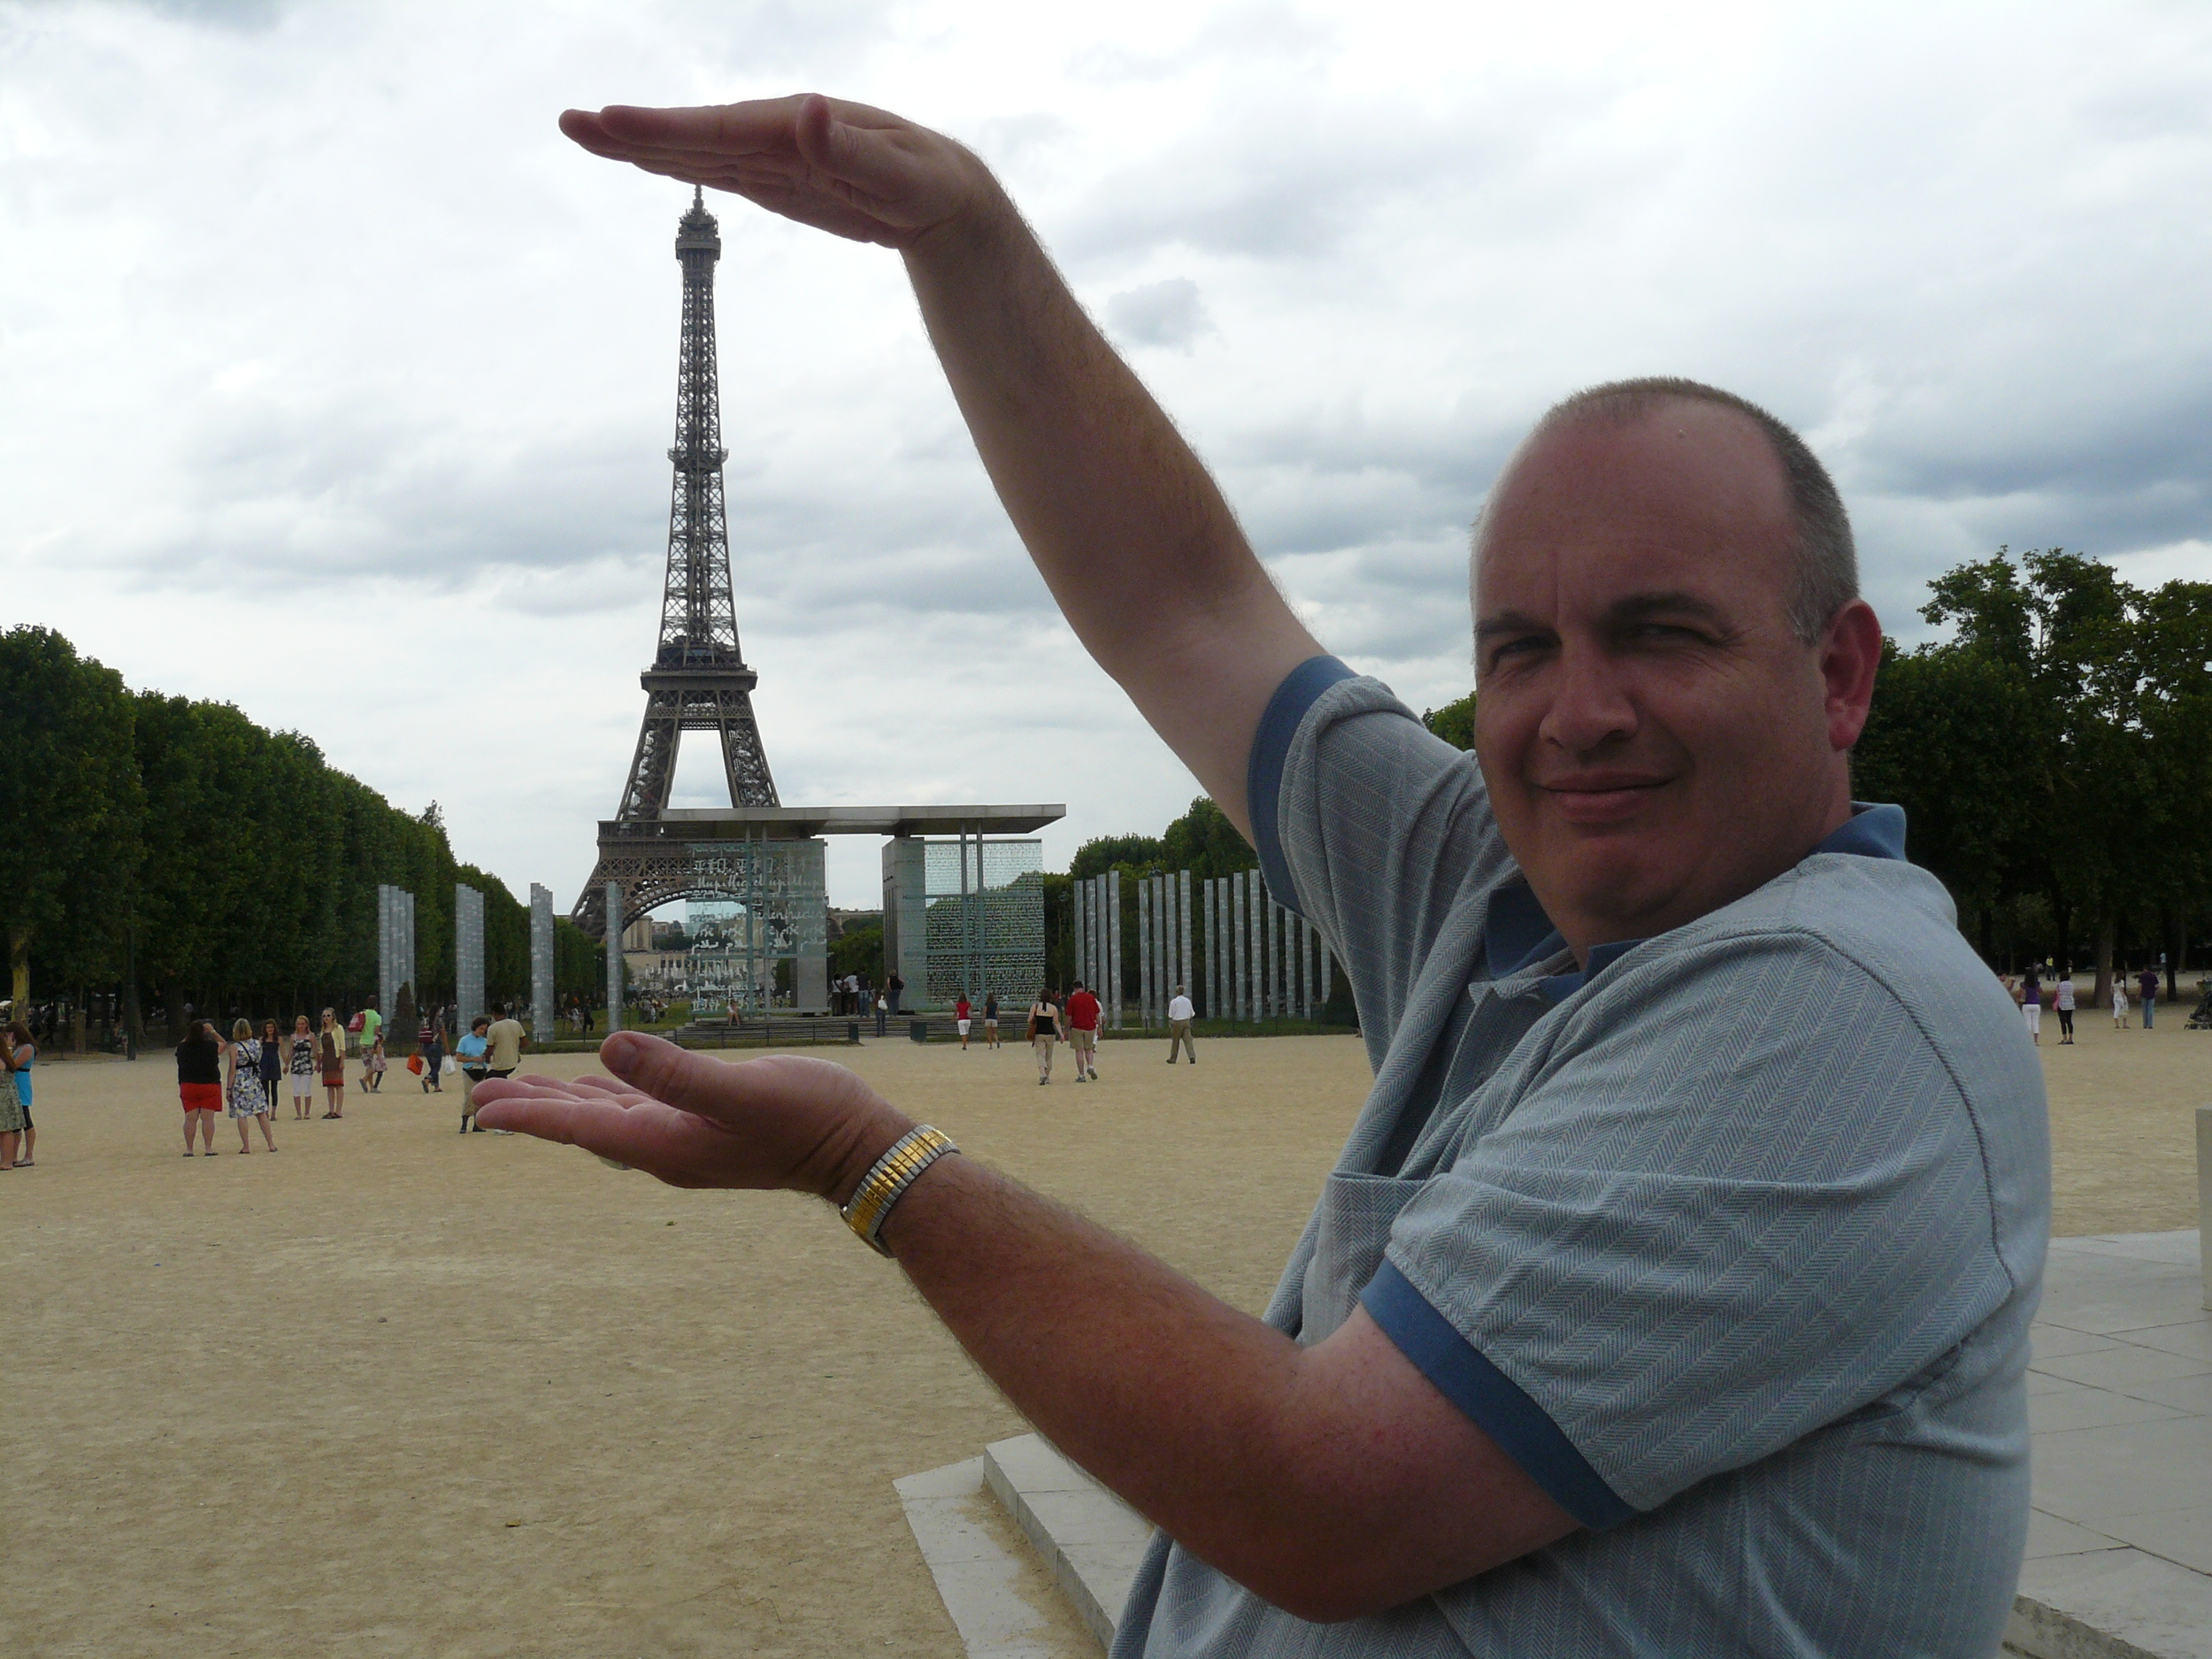 Our accompanist, Graham Adams, measuring the height of the Eiffel Tower before we go up to the top the next day.